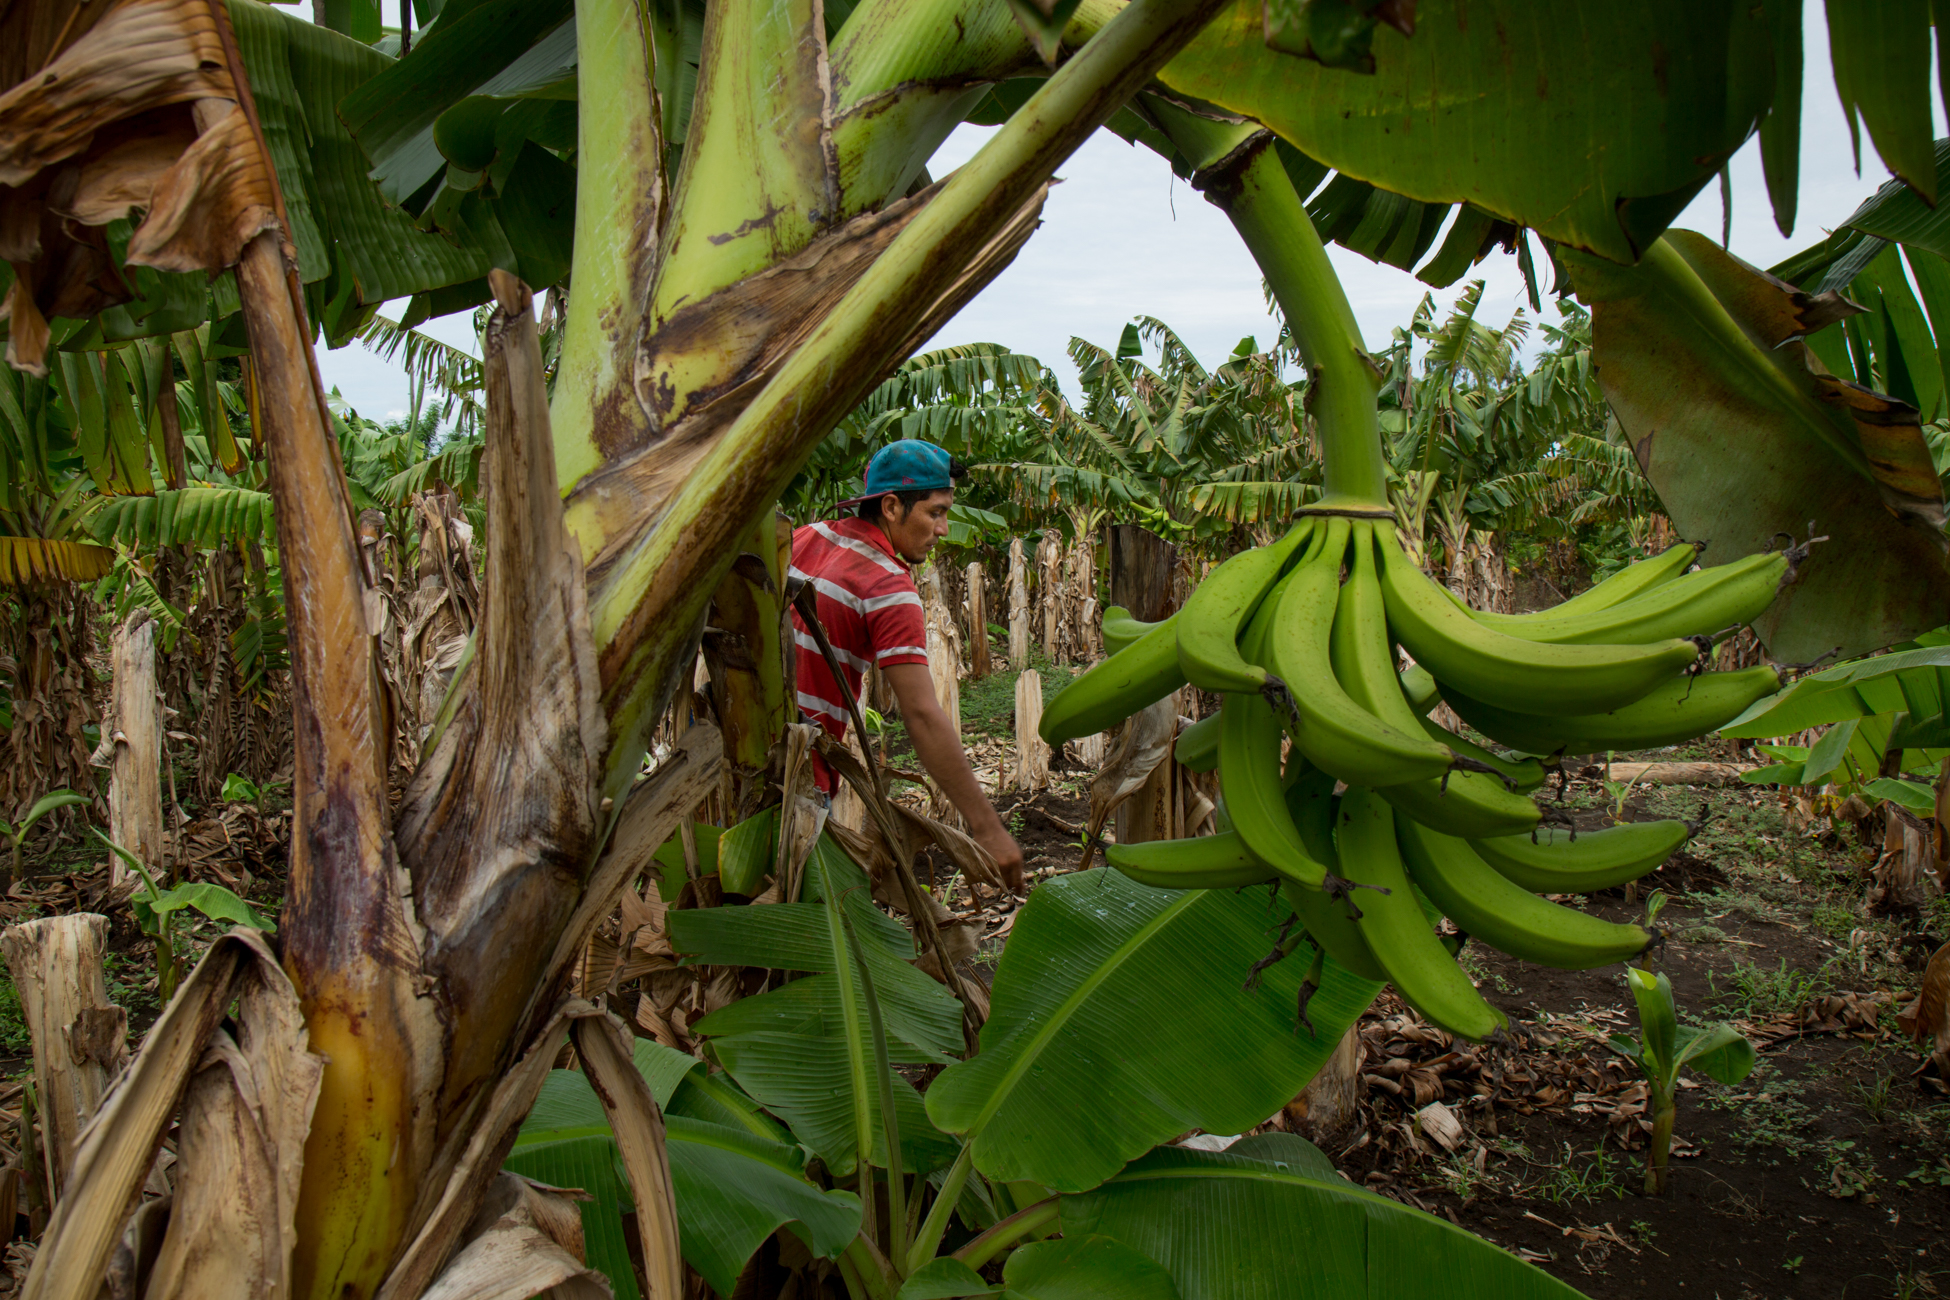 Workers at a plantain plantation, in Santa Teresa, Ometepe Their land is under threat to be confiscated by the governemnt if the Grand Canal project goes through